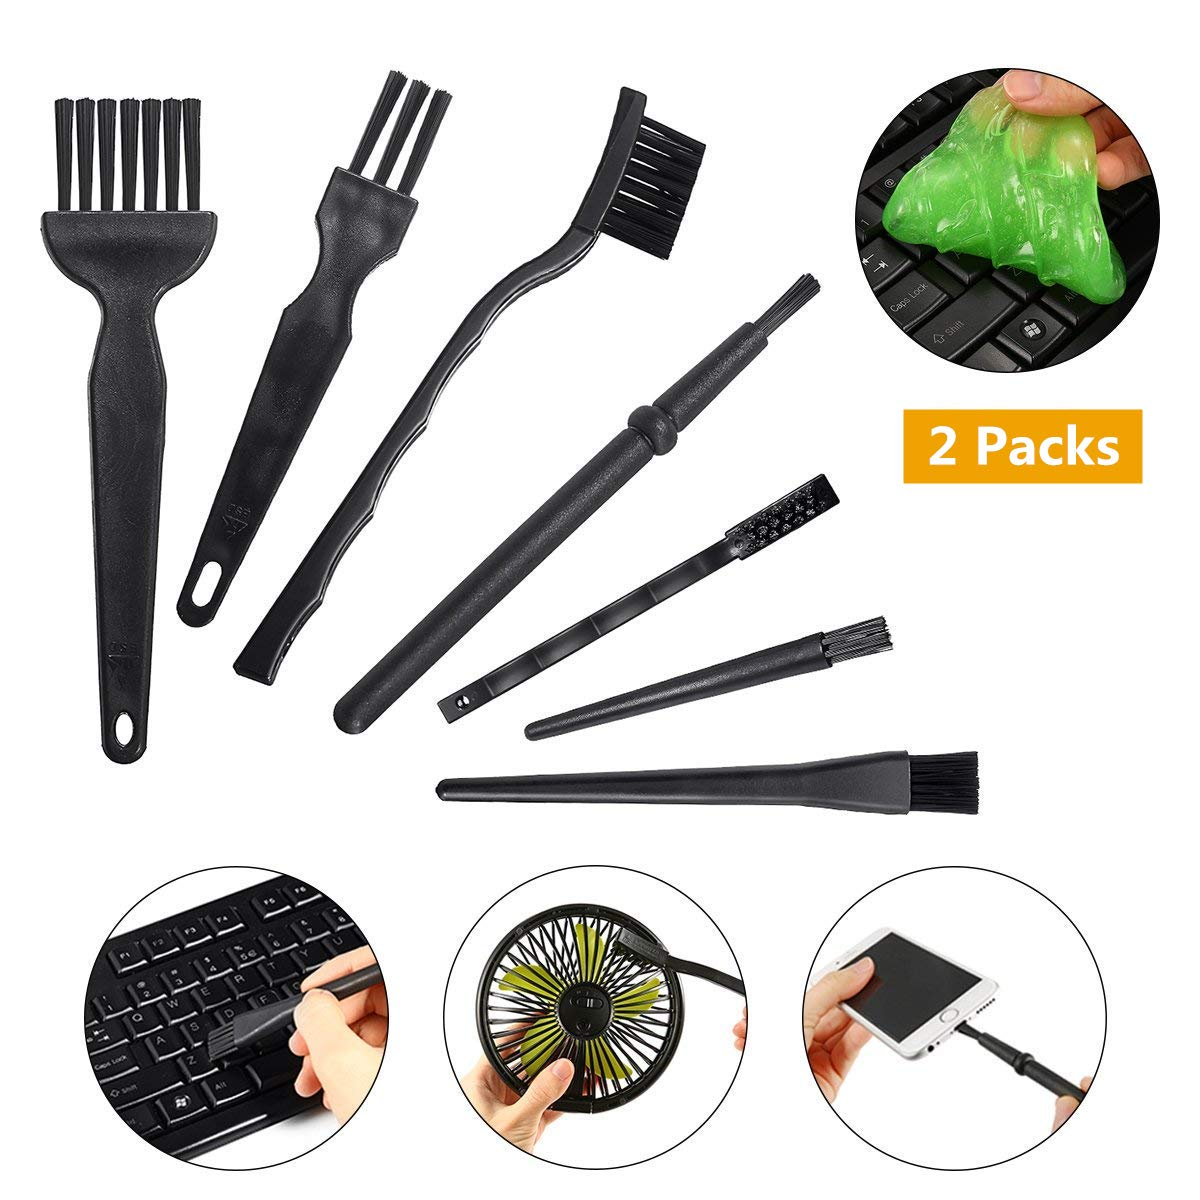 10 in 1 Electronic Cleaner, MECO Portable Handle Nylon Anti static Brushes Cleaning Kit(2 Packs Cleaning Gel)